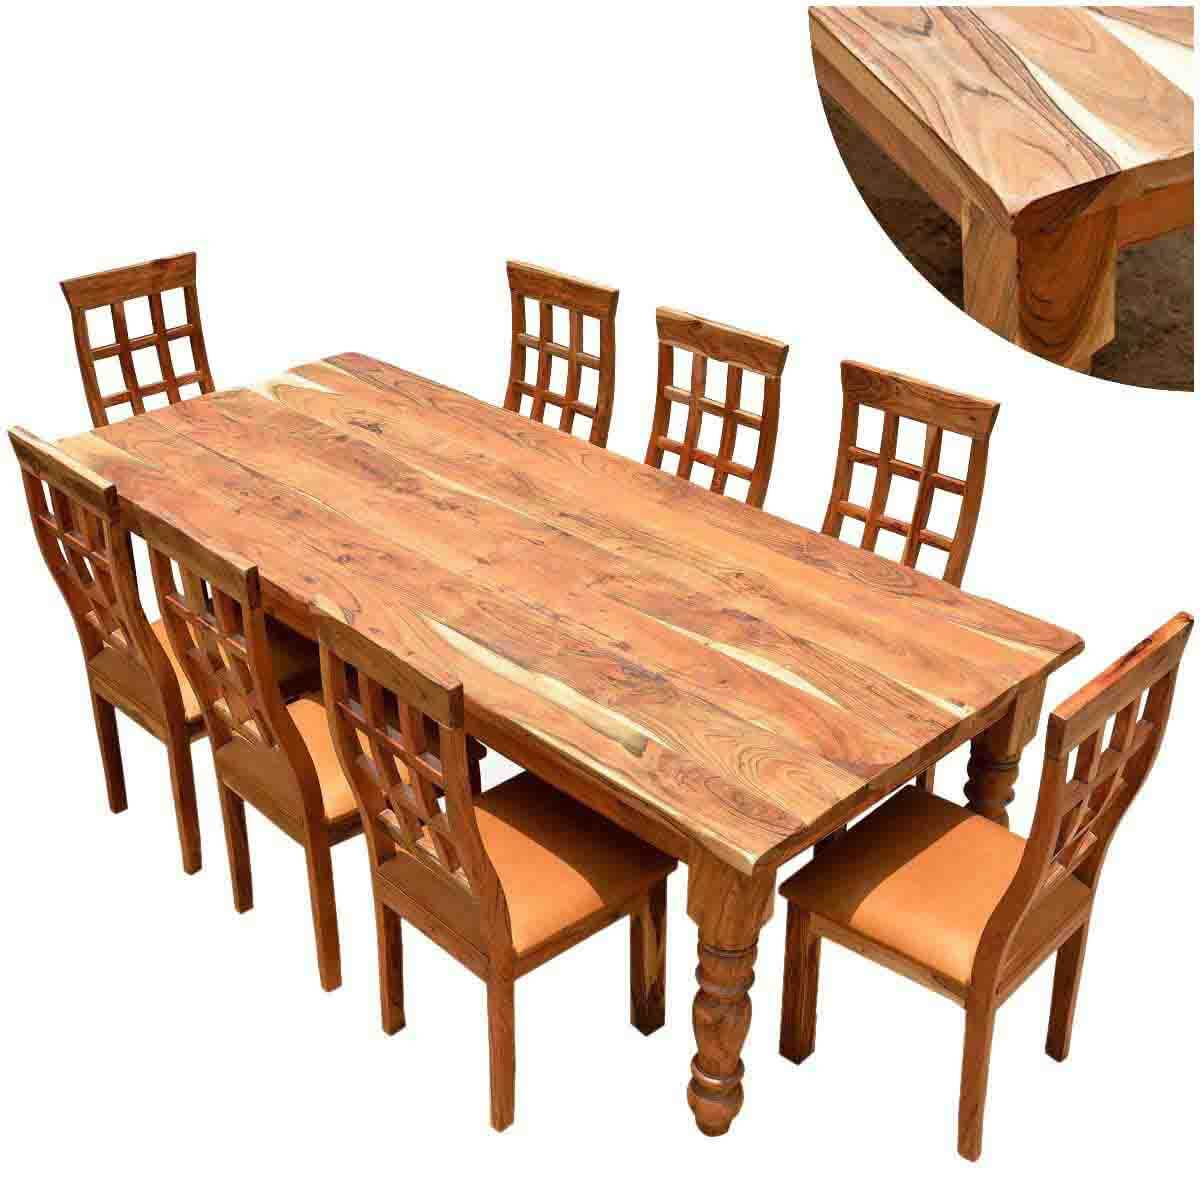 Rustic dining table and chair sets sierra living concepts for Wooden dining table and chairs